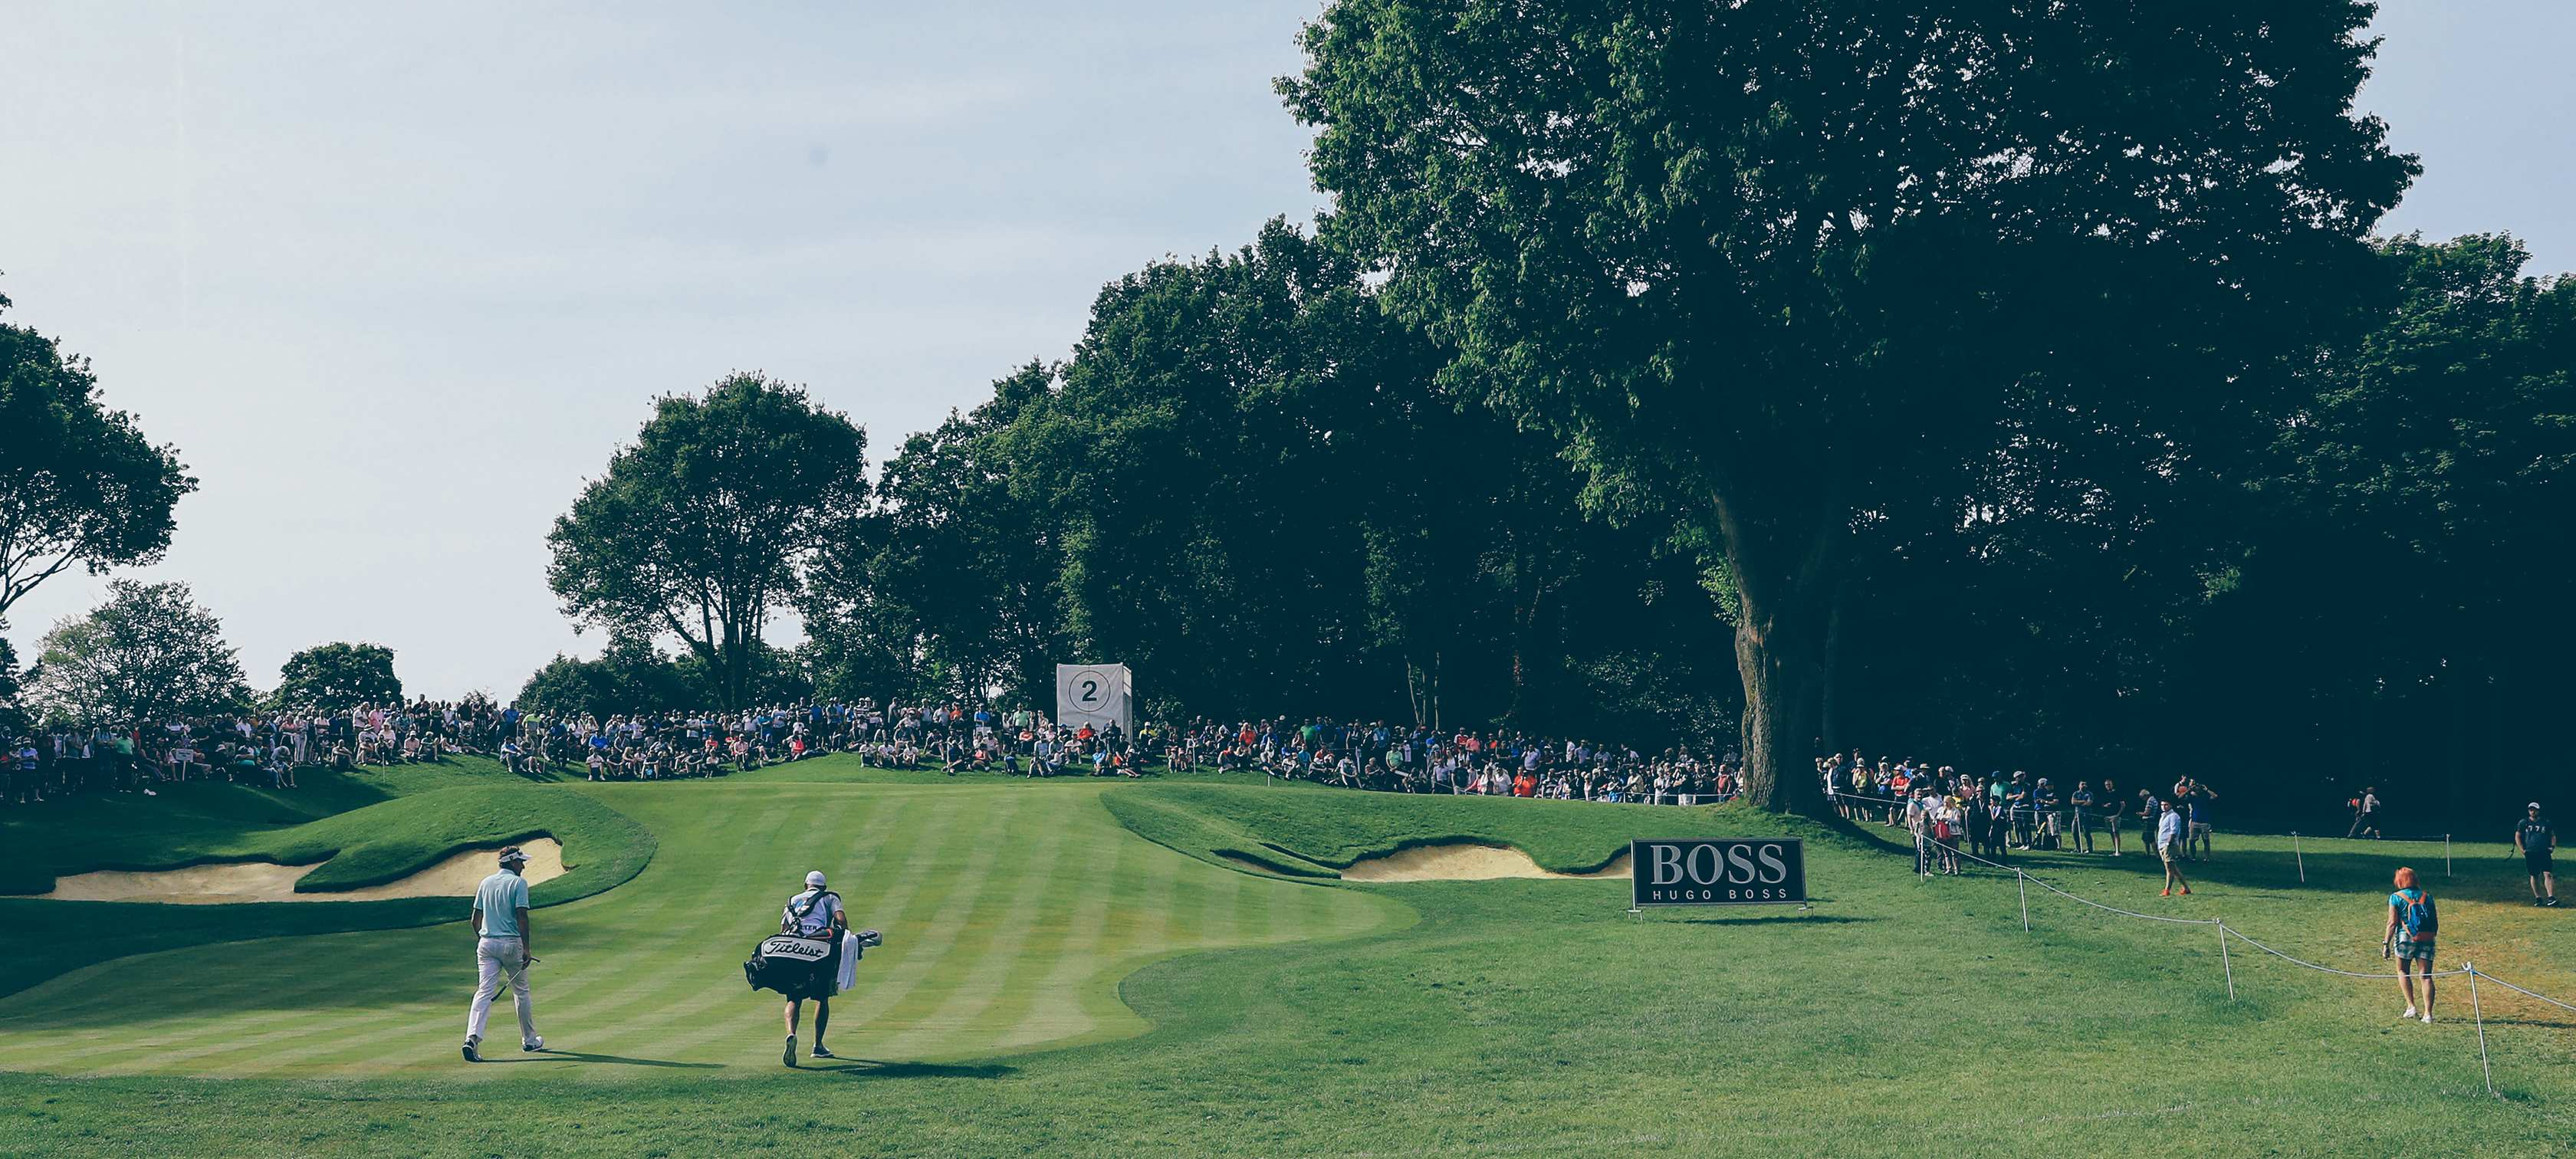 14 Great 2019 Bmw Pga Chionship Wallpaper with 2019 Bmw Pga Chionship